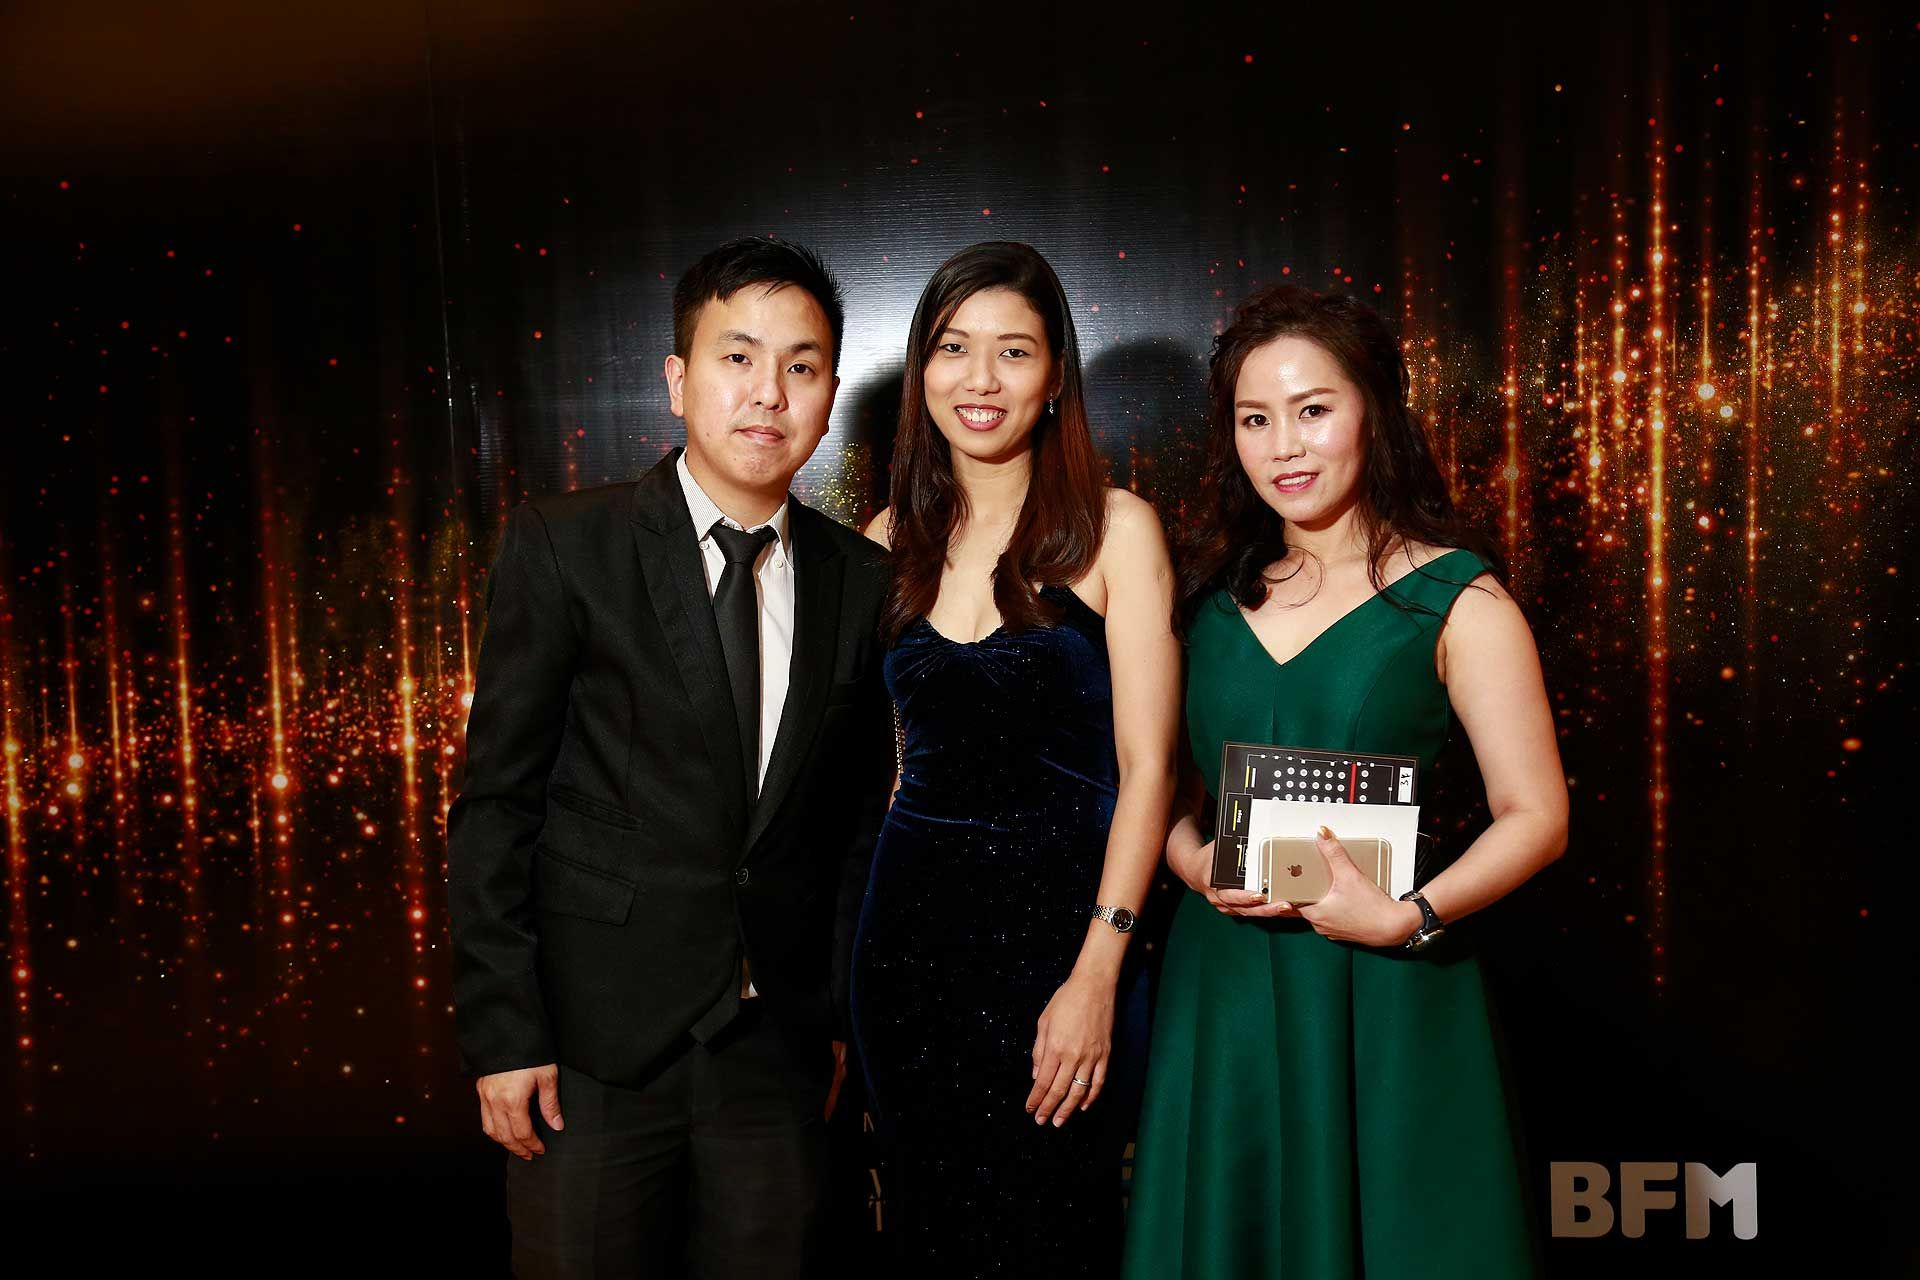 Leon Kok, Samantha Goh and Liew Lai Yen